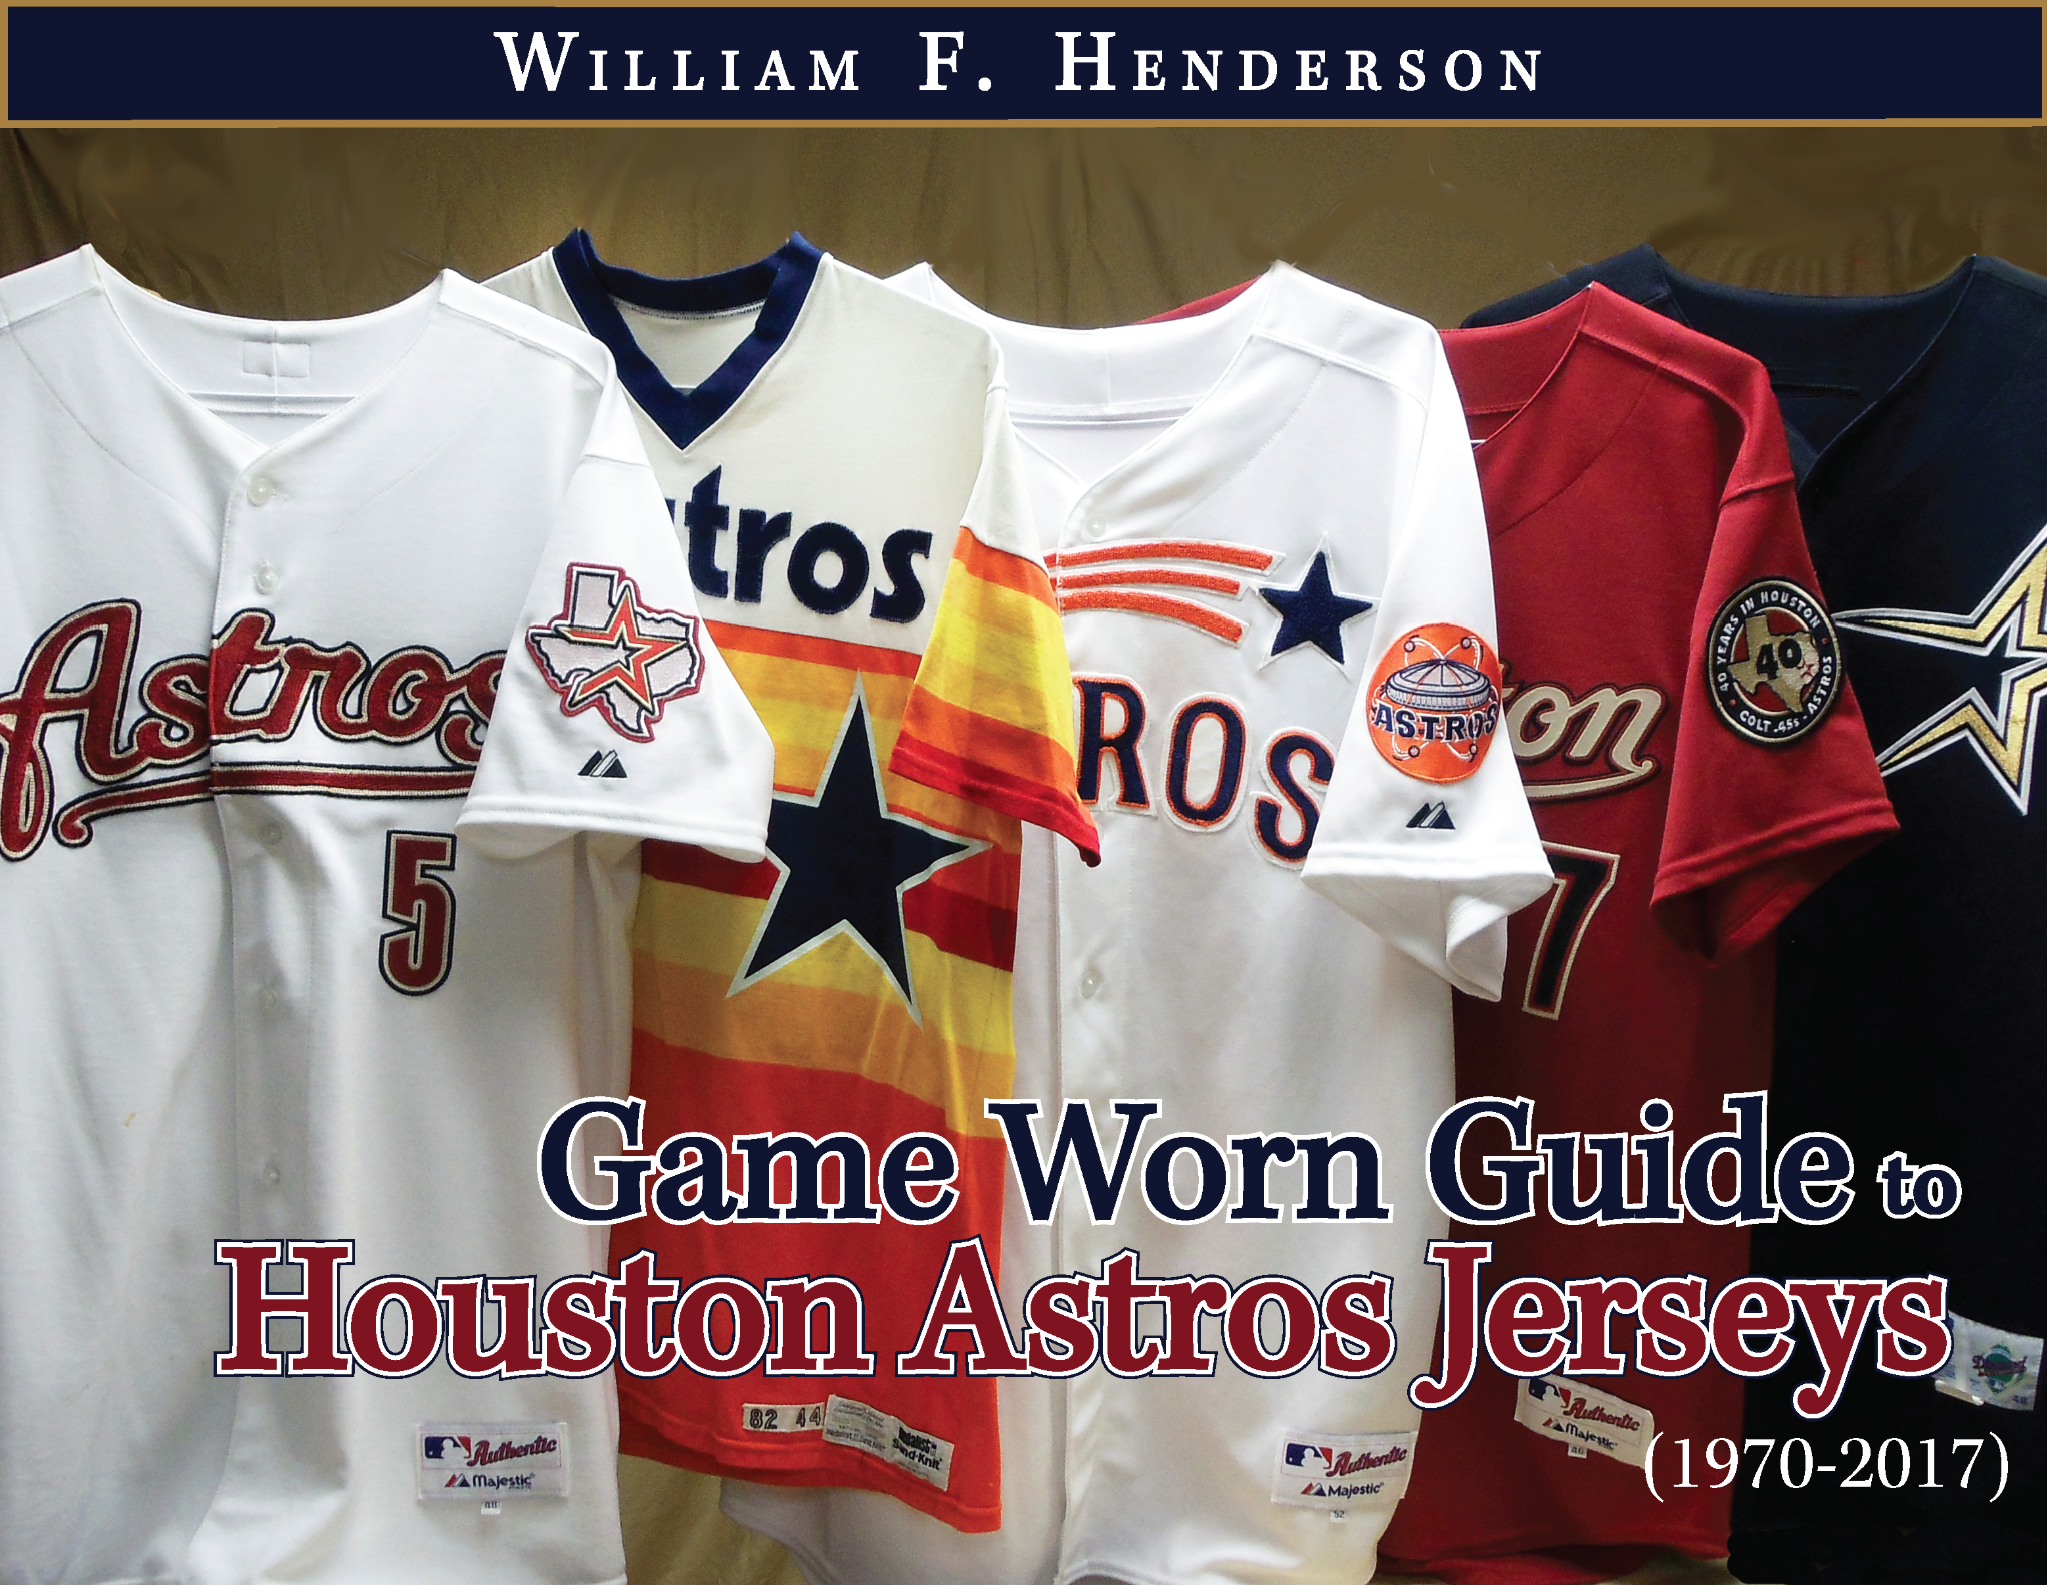 Game Worn Guide to Houston Astros Jerseys (1970-2017)